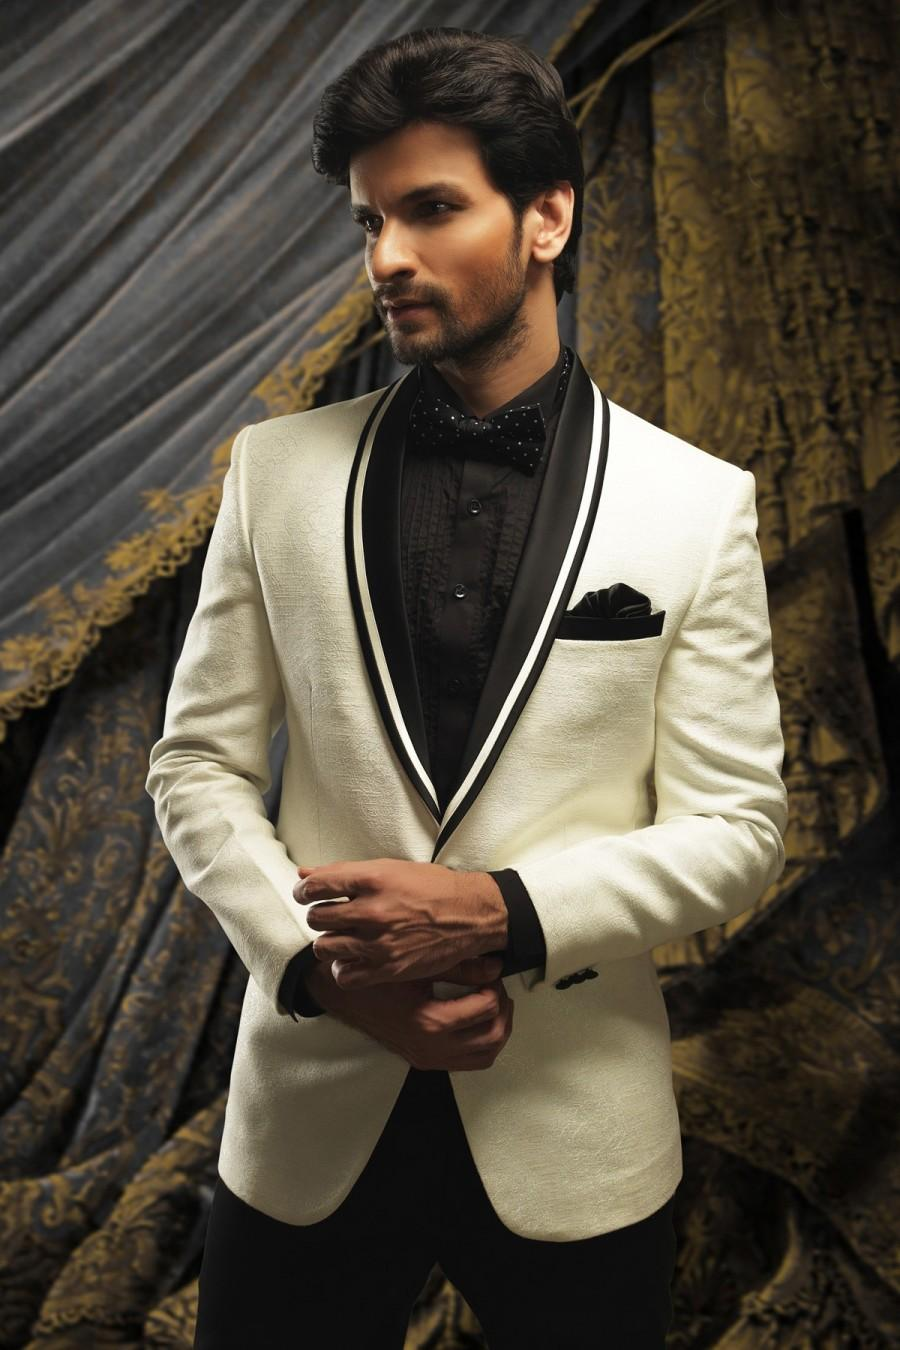 Wedding - off white resplendent price suit with shawl lapel